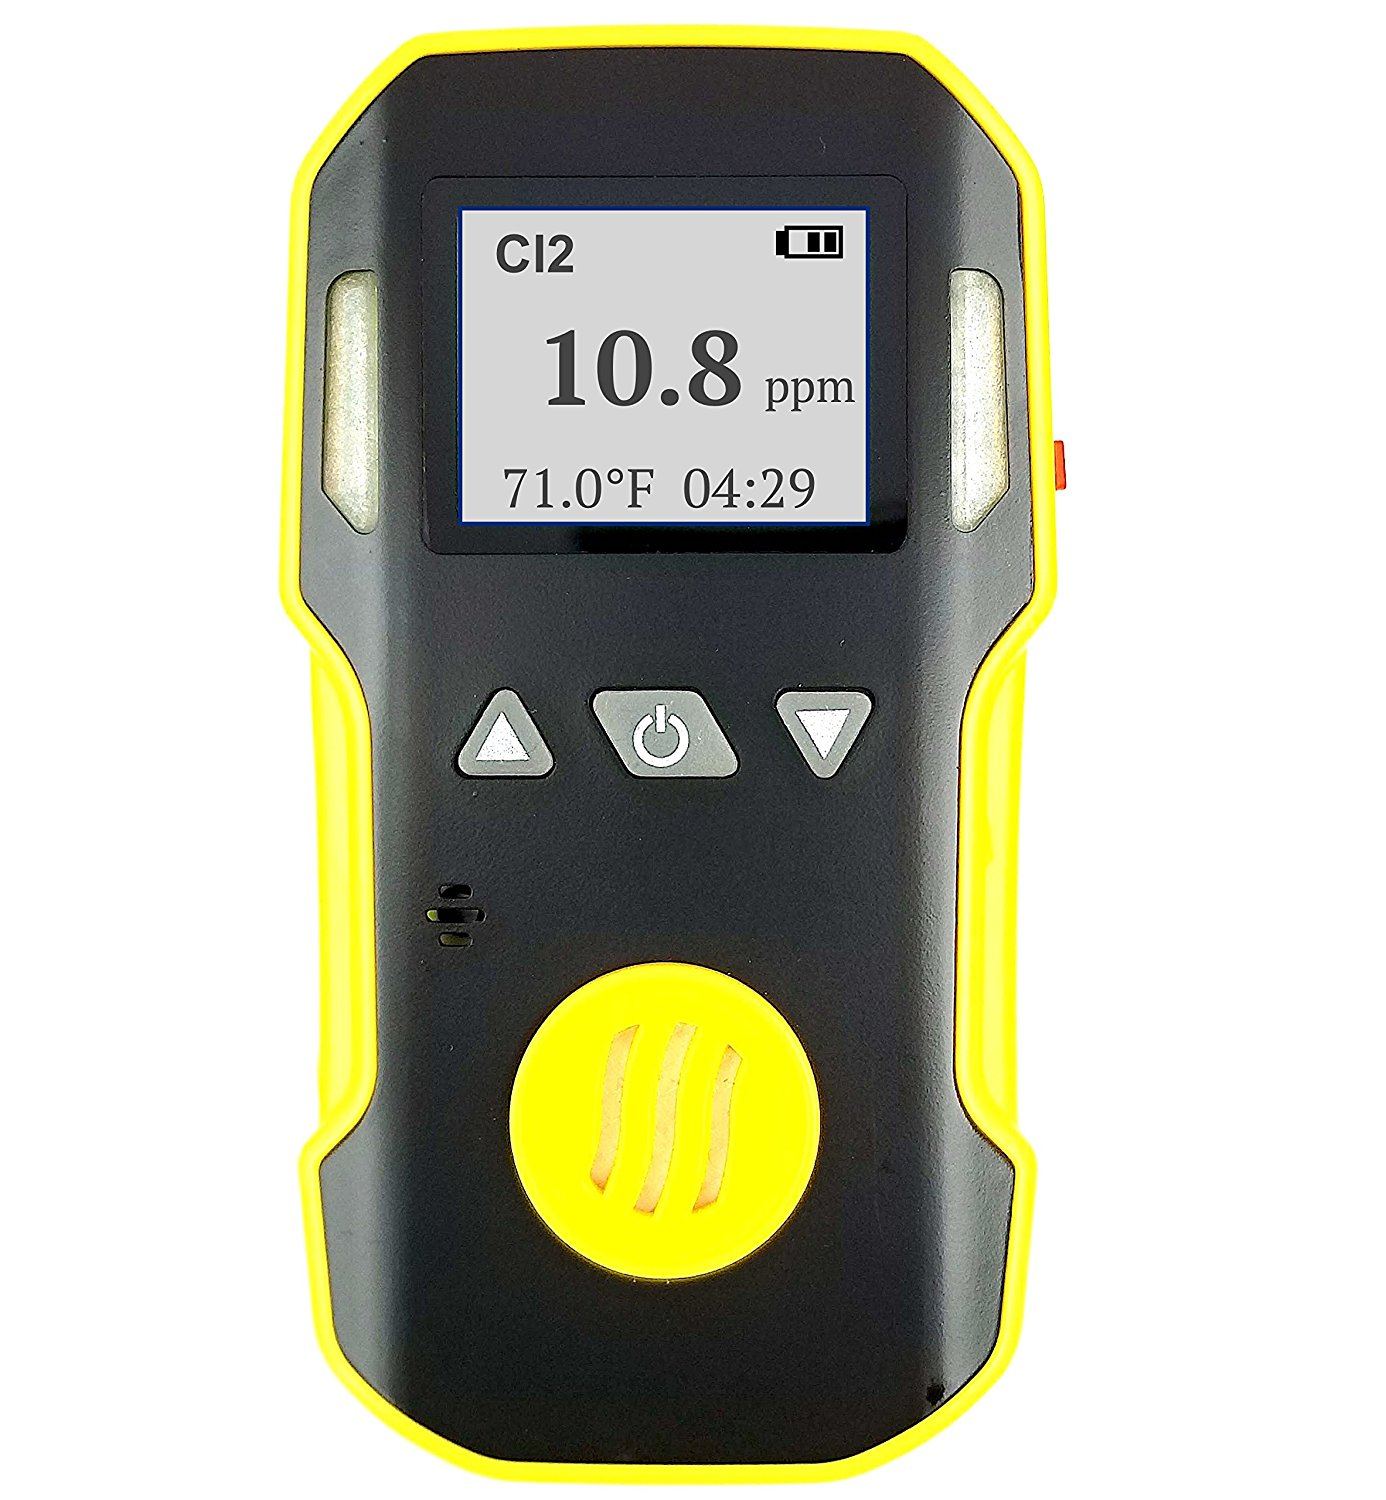 Chlorine Detector & Analyzer by FORENSICS & BOSEAN   Anti-slip Grip   Water, Dust & Explosion Proof   Li-Ion Battery 1500mAh   Adjustable Sound, Light and Vibration Alarms   0-20 ppm Cl2 Gas  